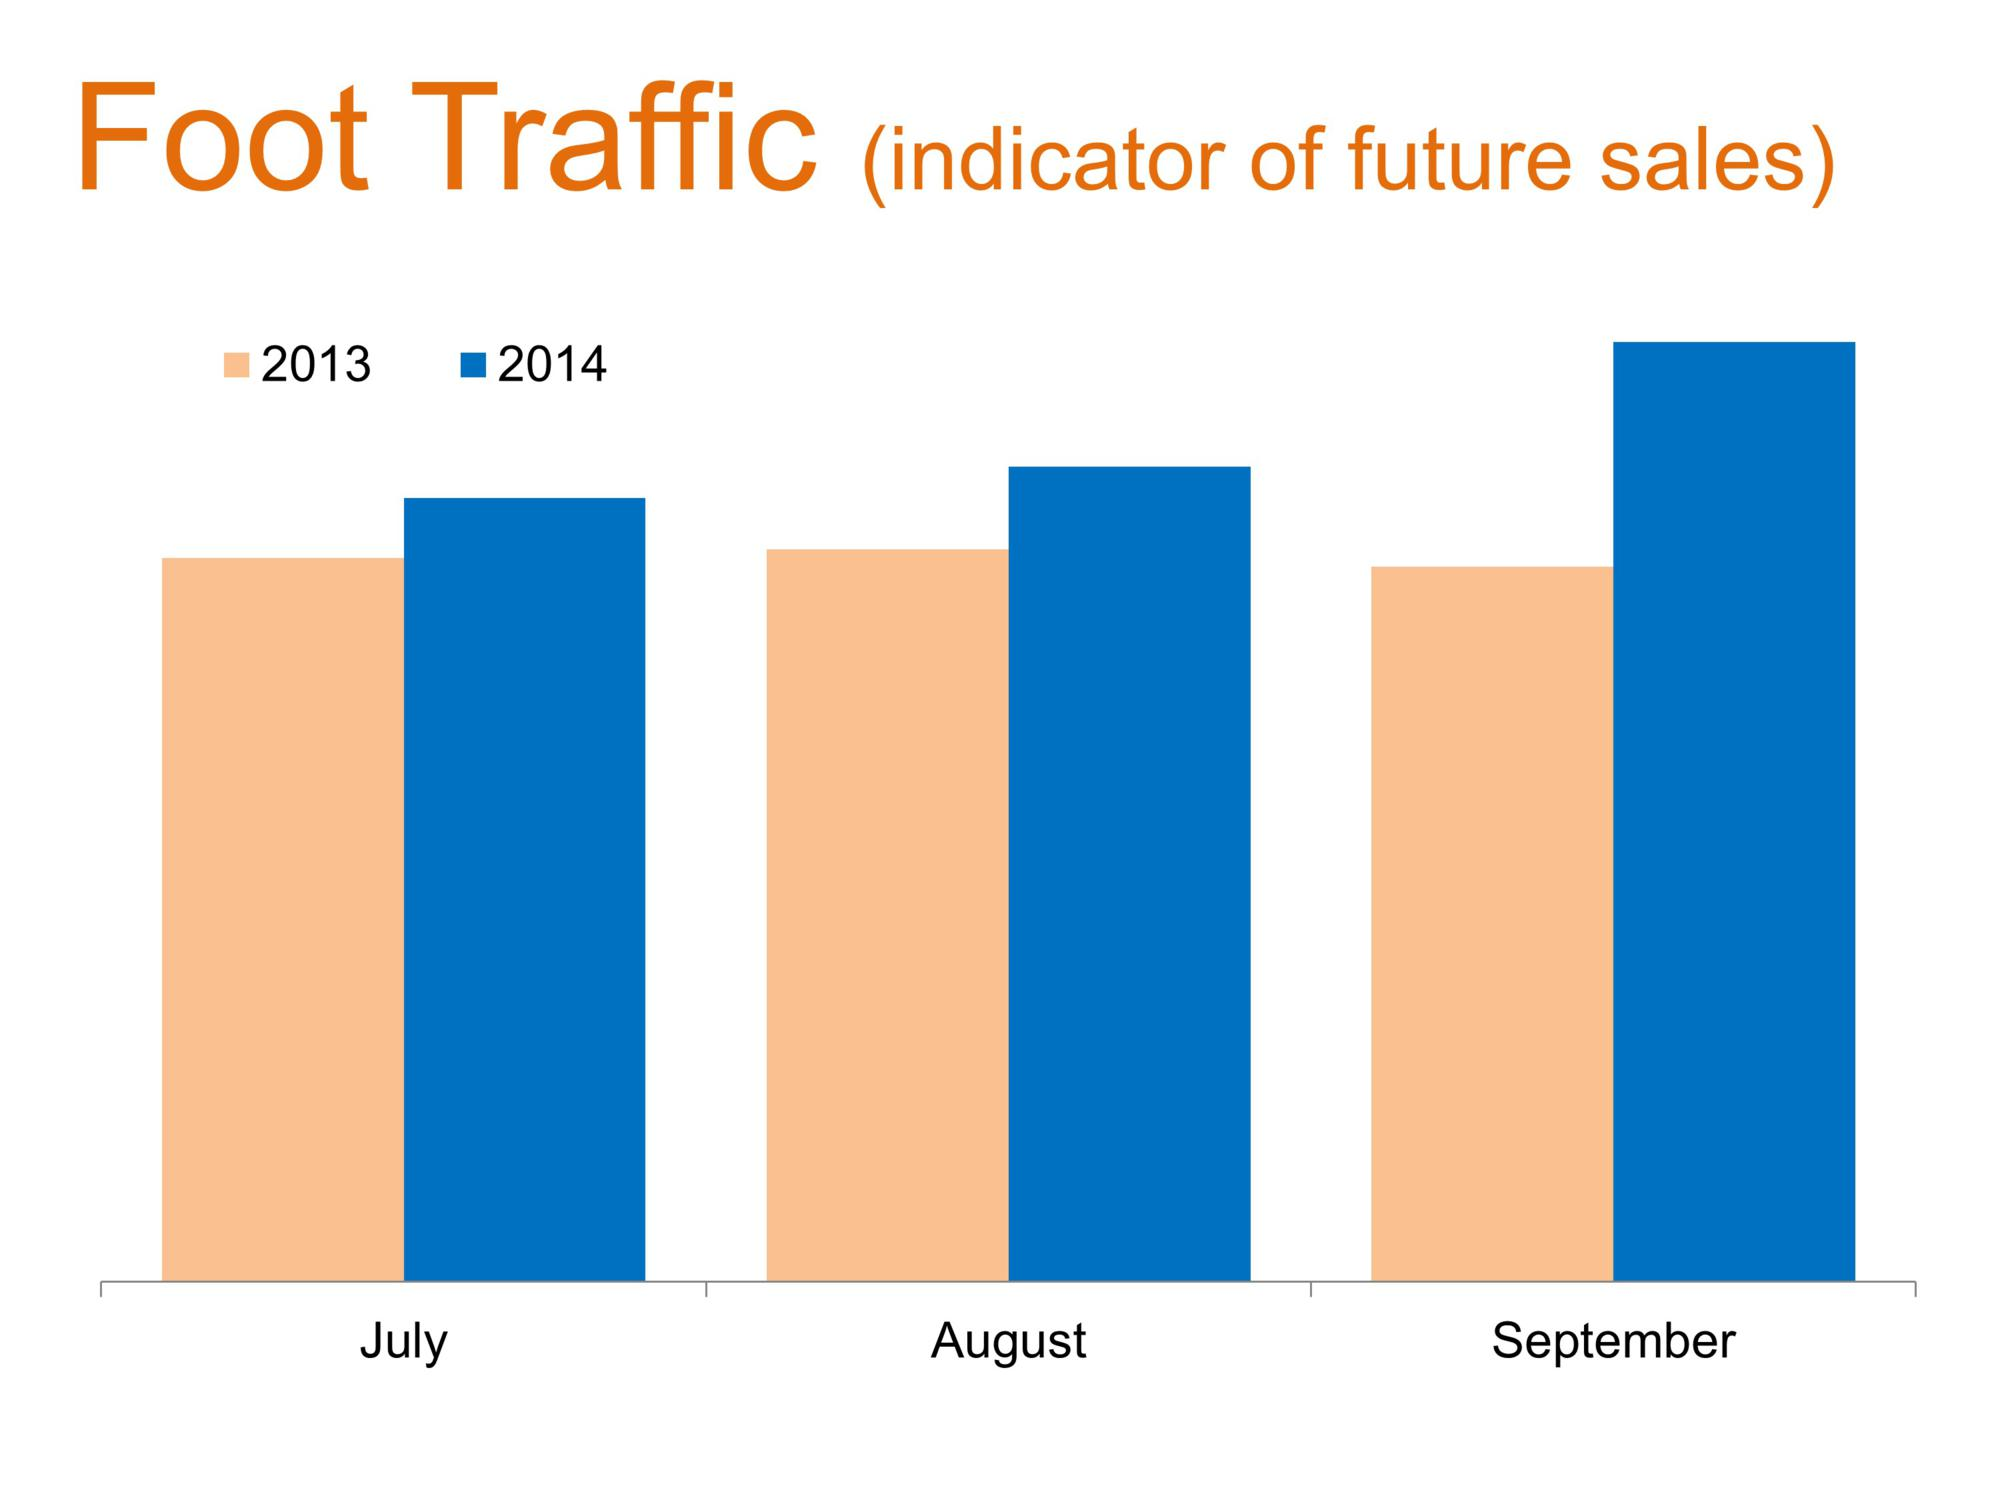 Foot Traffic and Sales